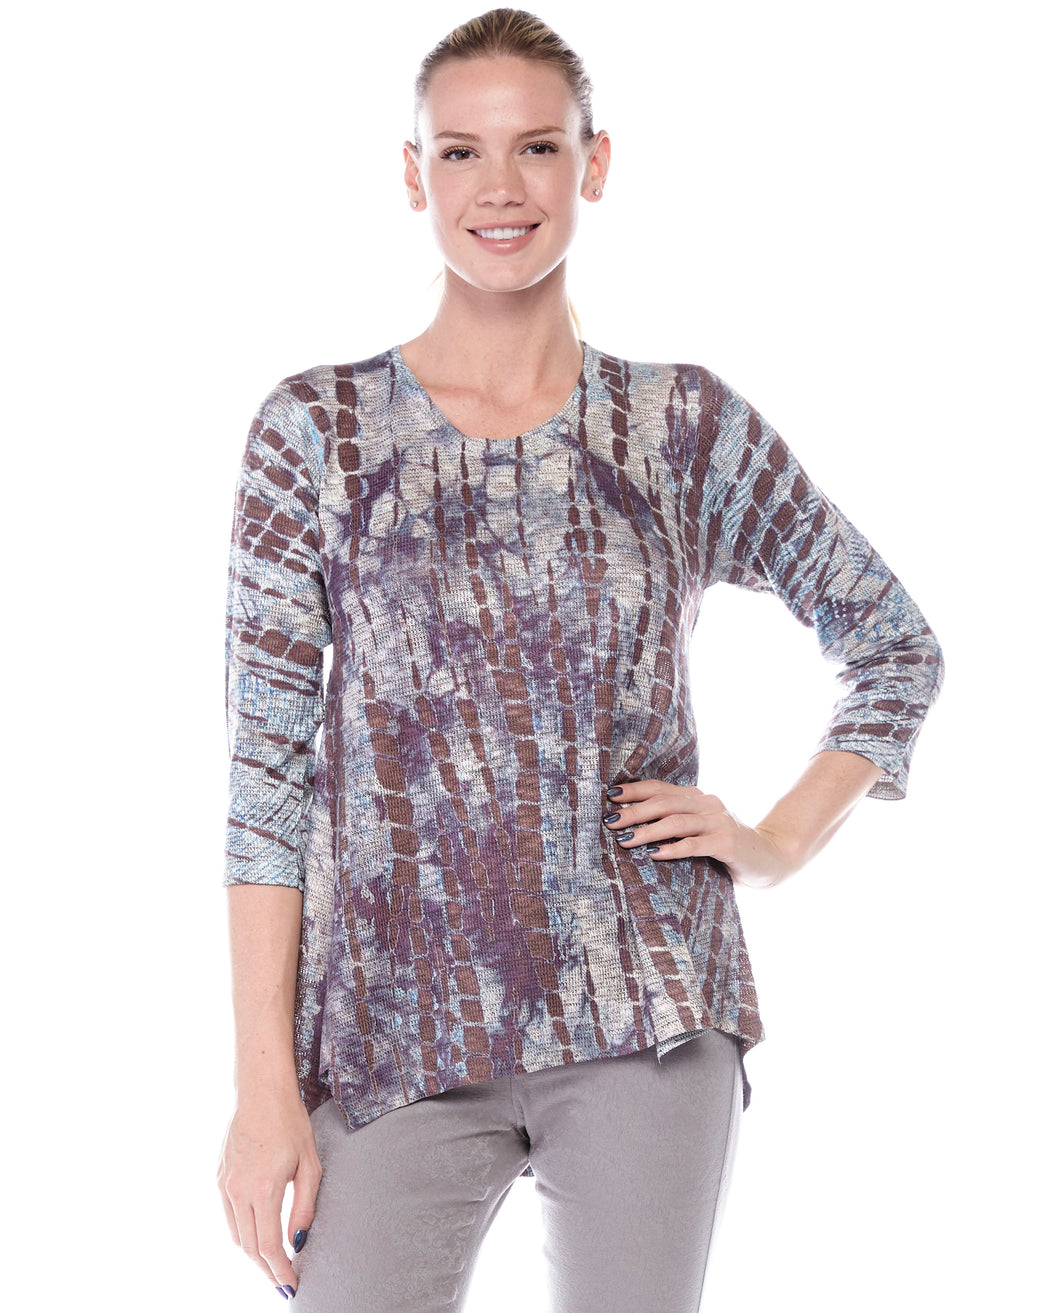 Miray Top in Koi Pond Print - Atelier5